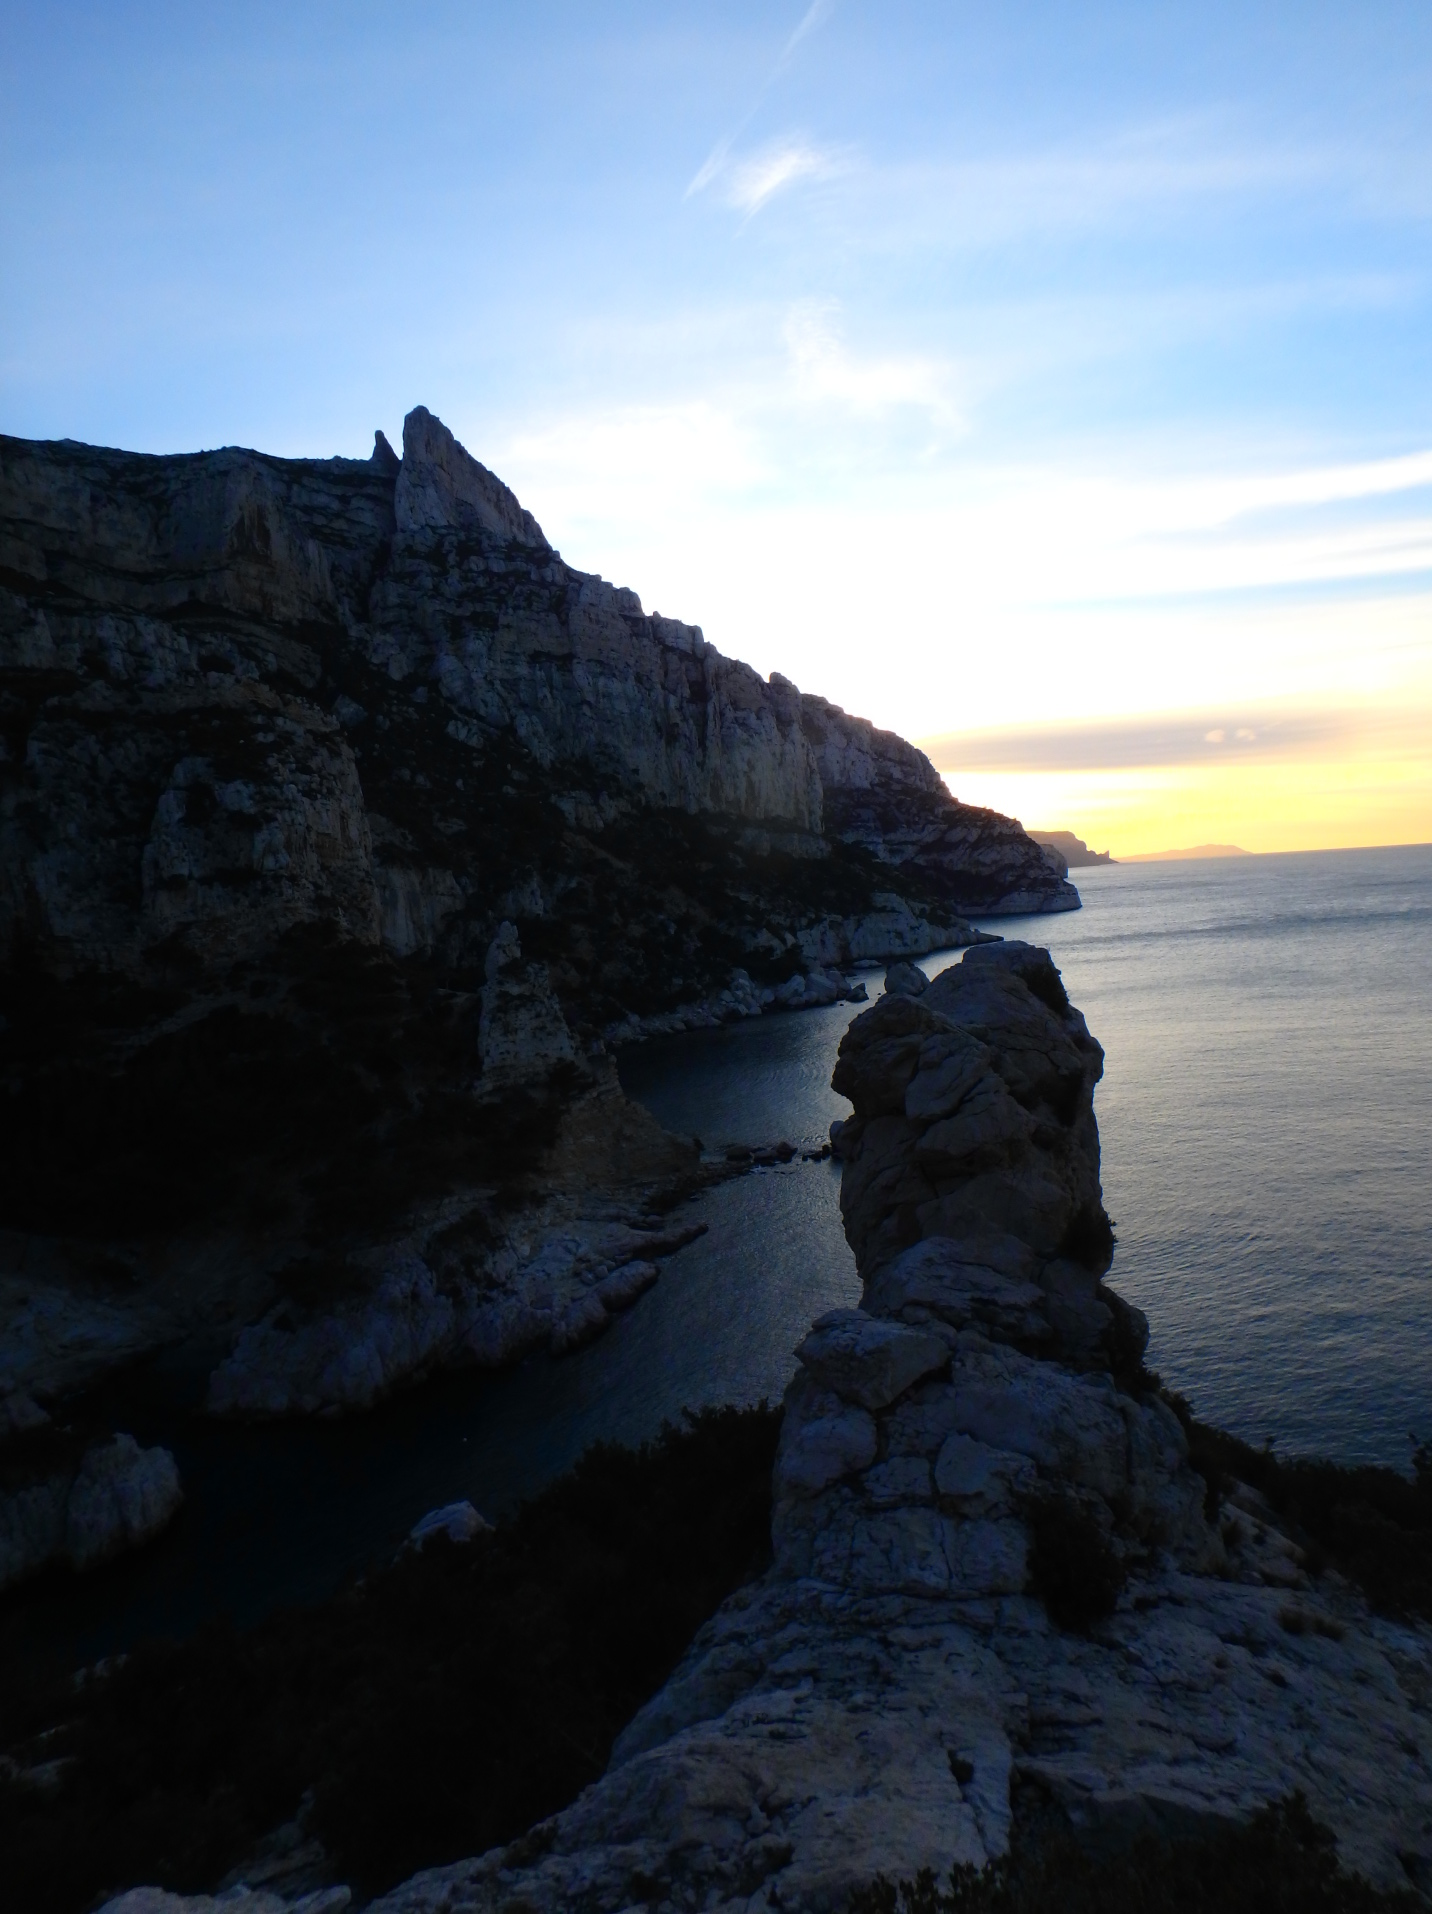 Calanque de Sugiton, near CIRM, Marseilles, March 2016